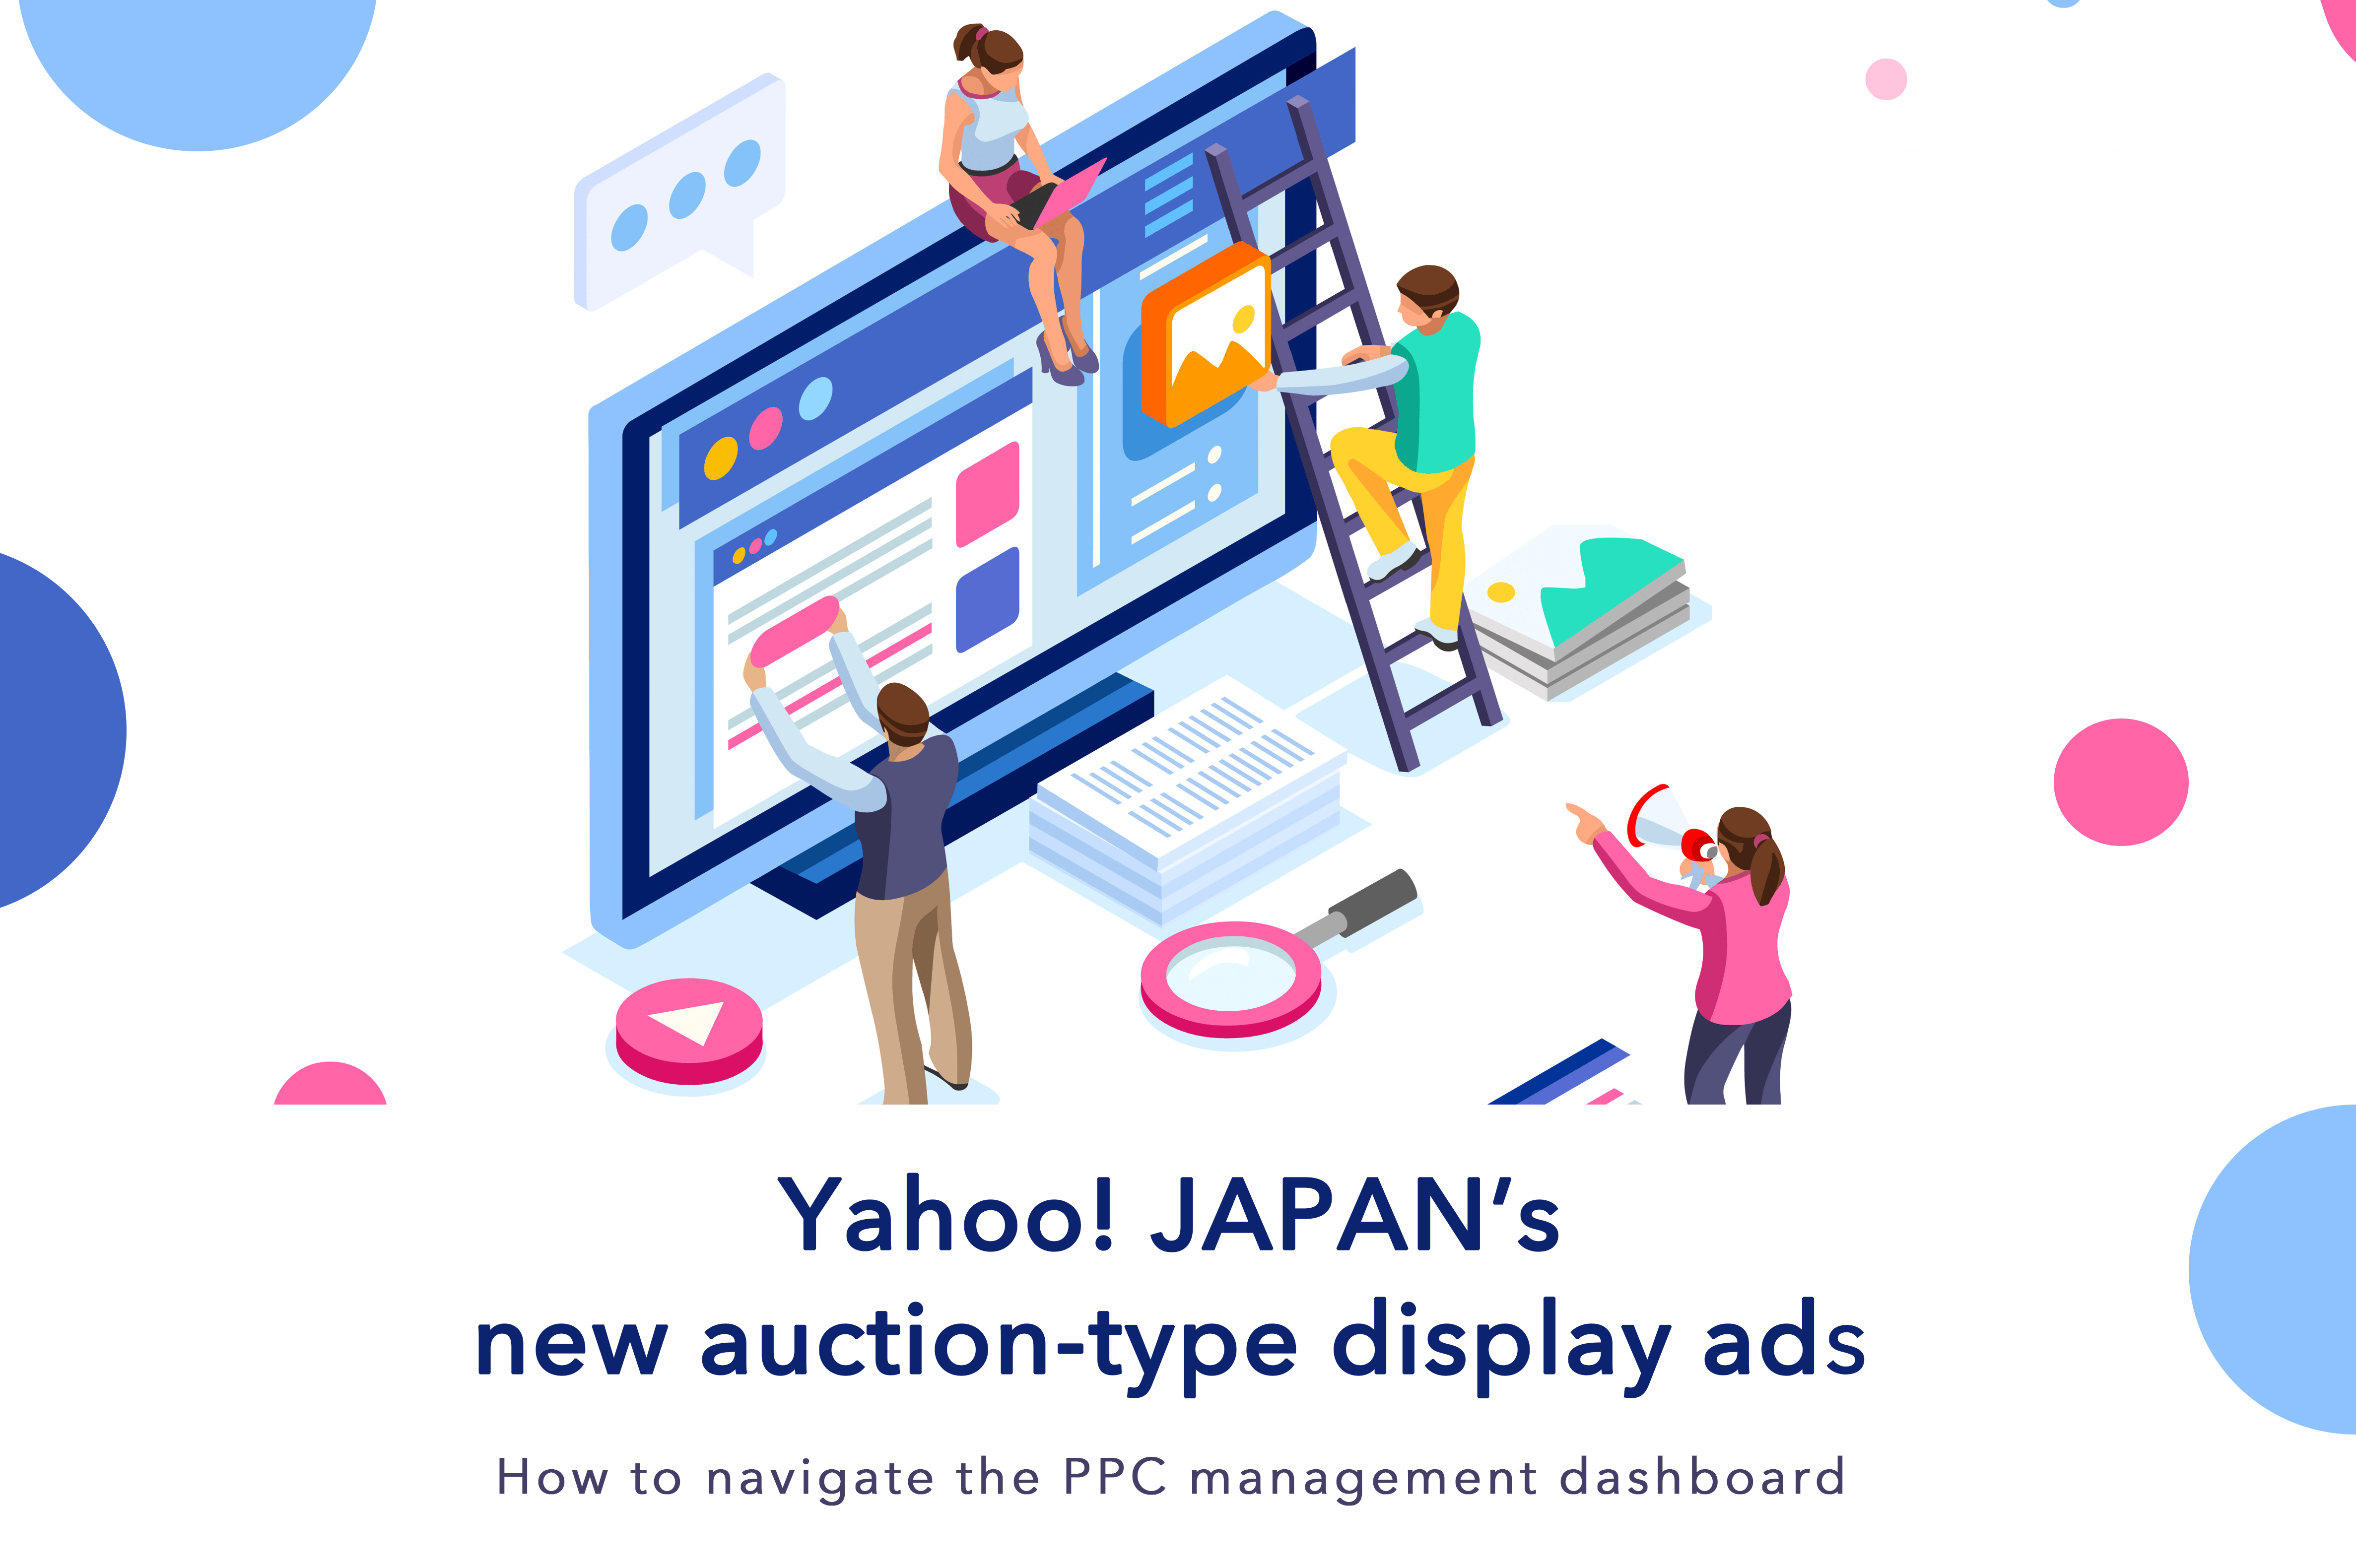 UX/UI Guide To Yahoo! JAPAN's New Auction-type Display Ads